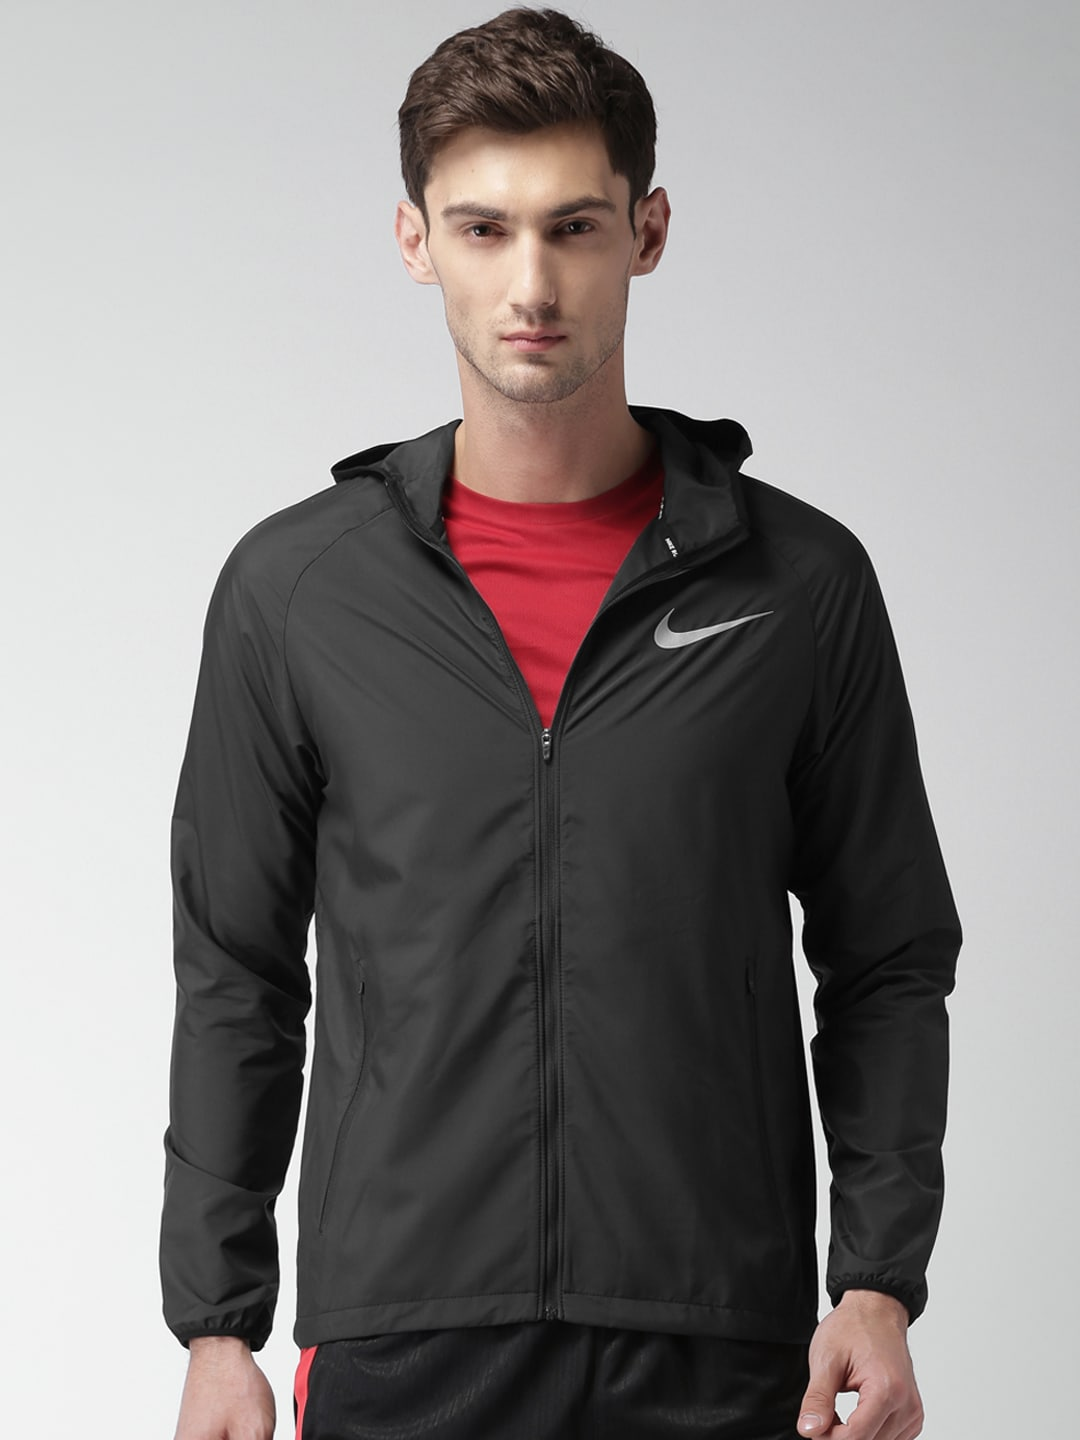 b2448bd381ef Nike Jackets - Buy Nike Jacket for Men   Women Online